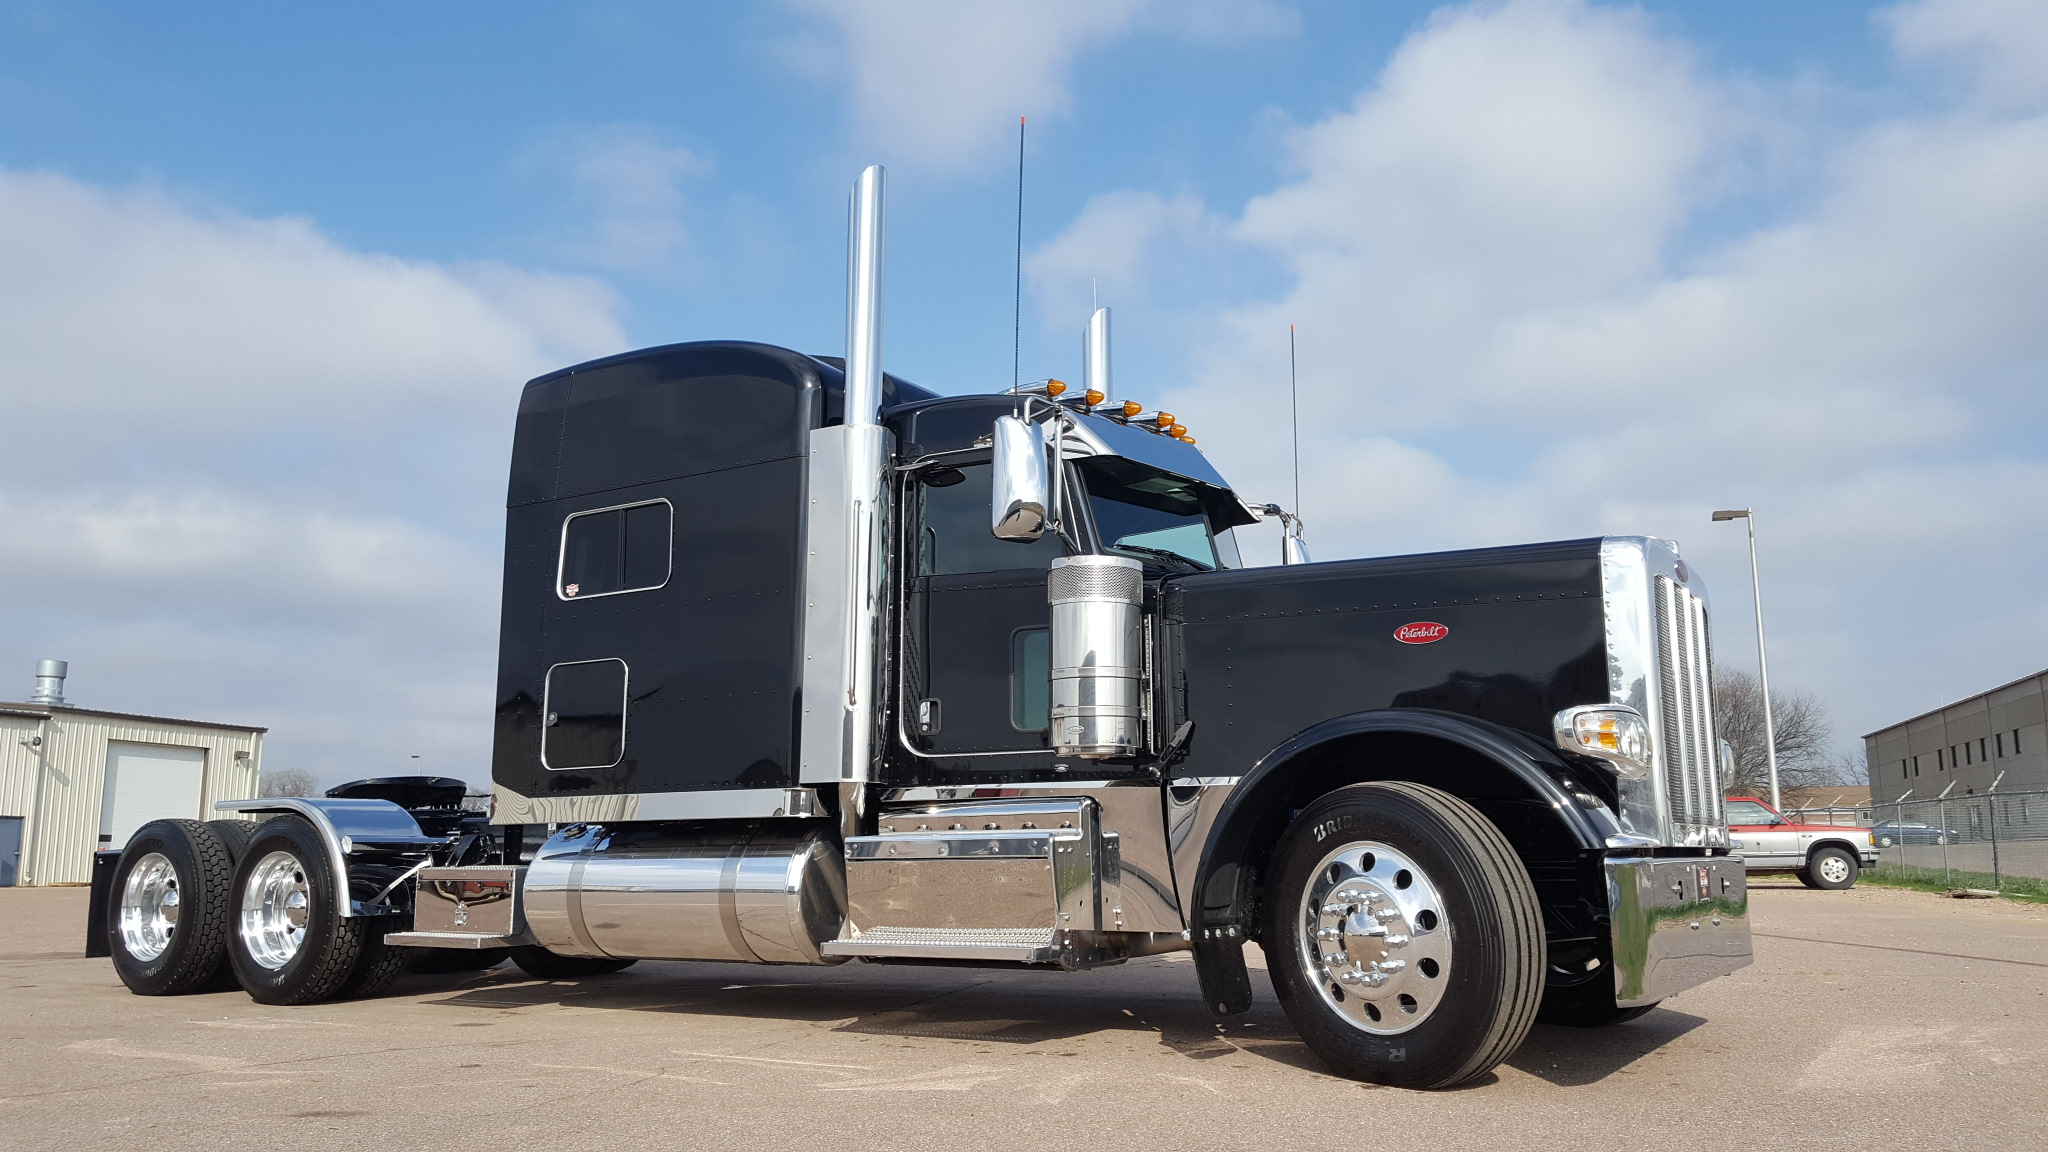 Wallpaper Stores In Sioux Falls Sd New Black And Chrome 389 Ready To Go Peterbilt Of Sioux